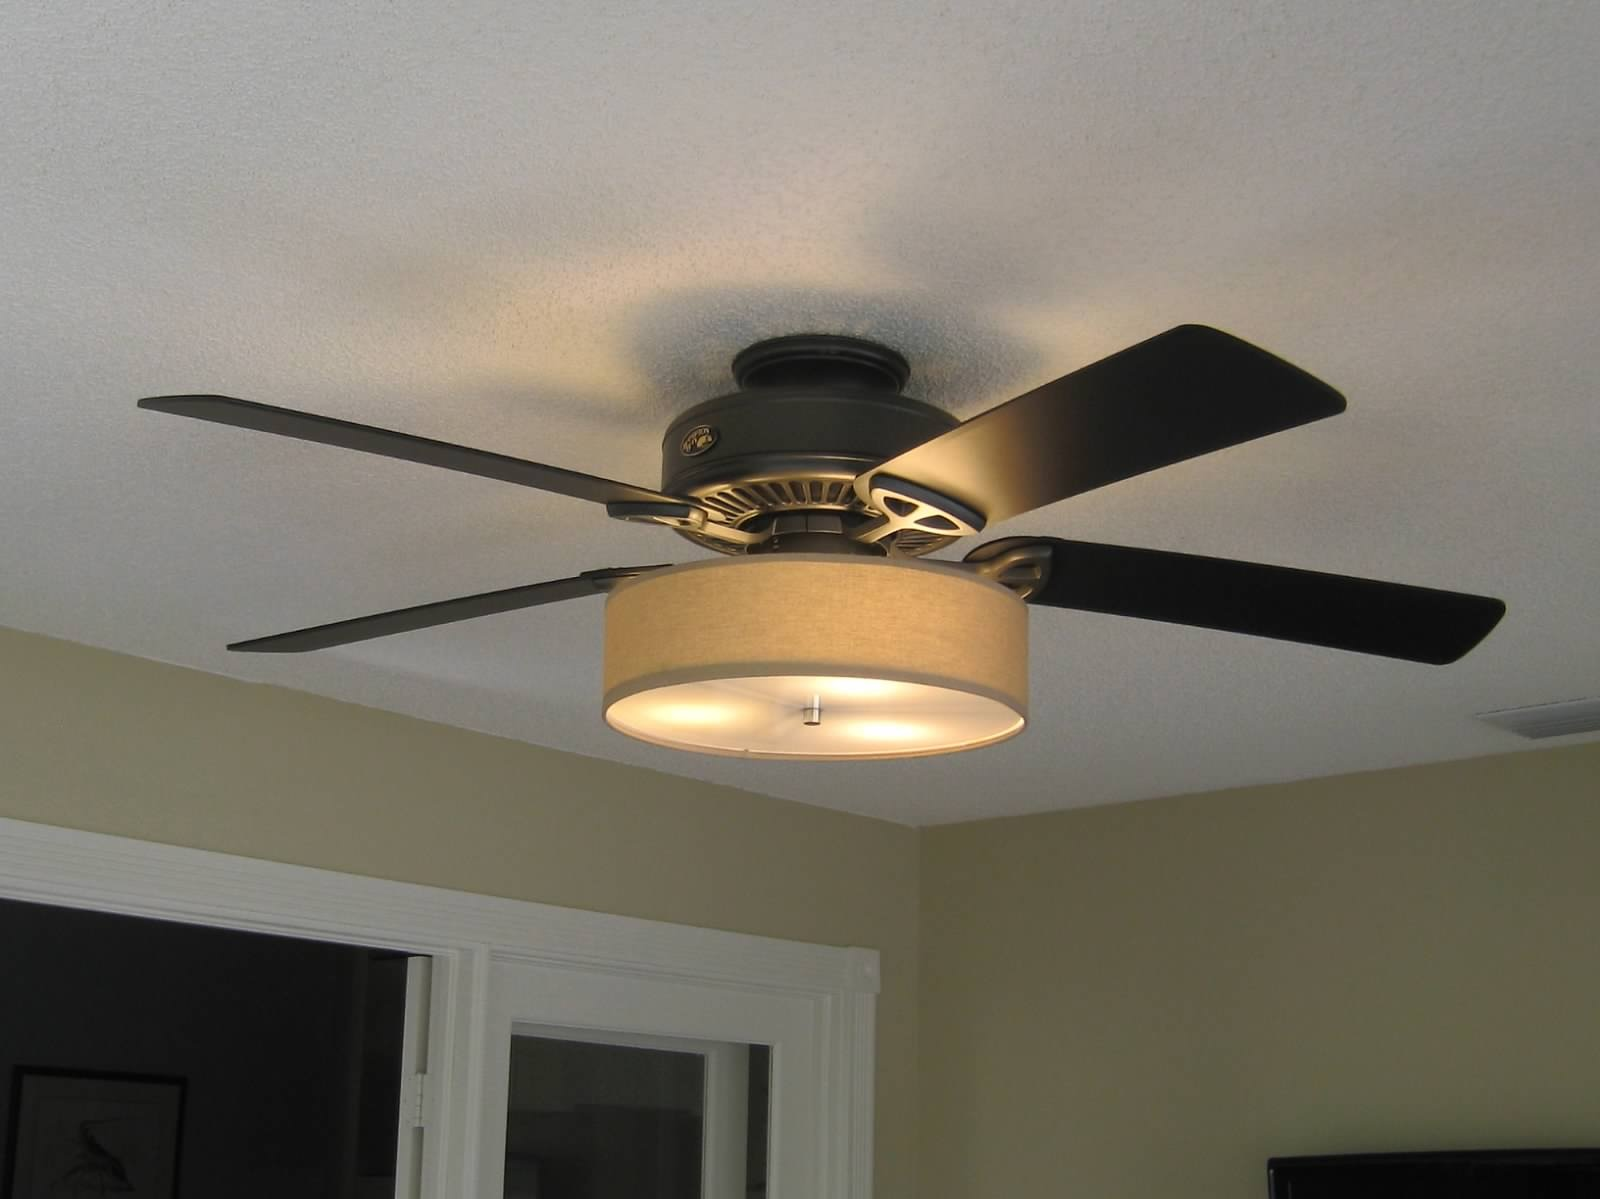 Drum light kits for ceiling fans 56